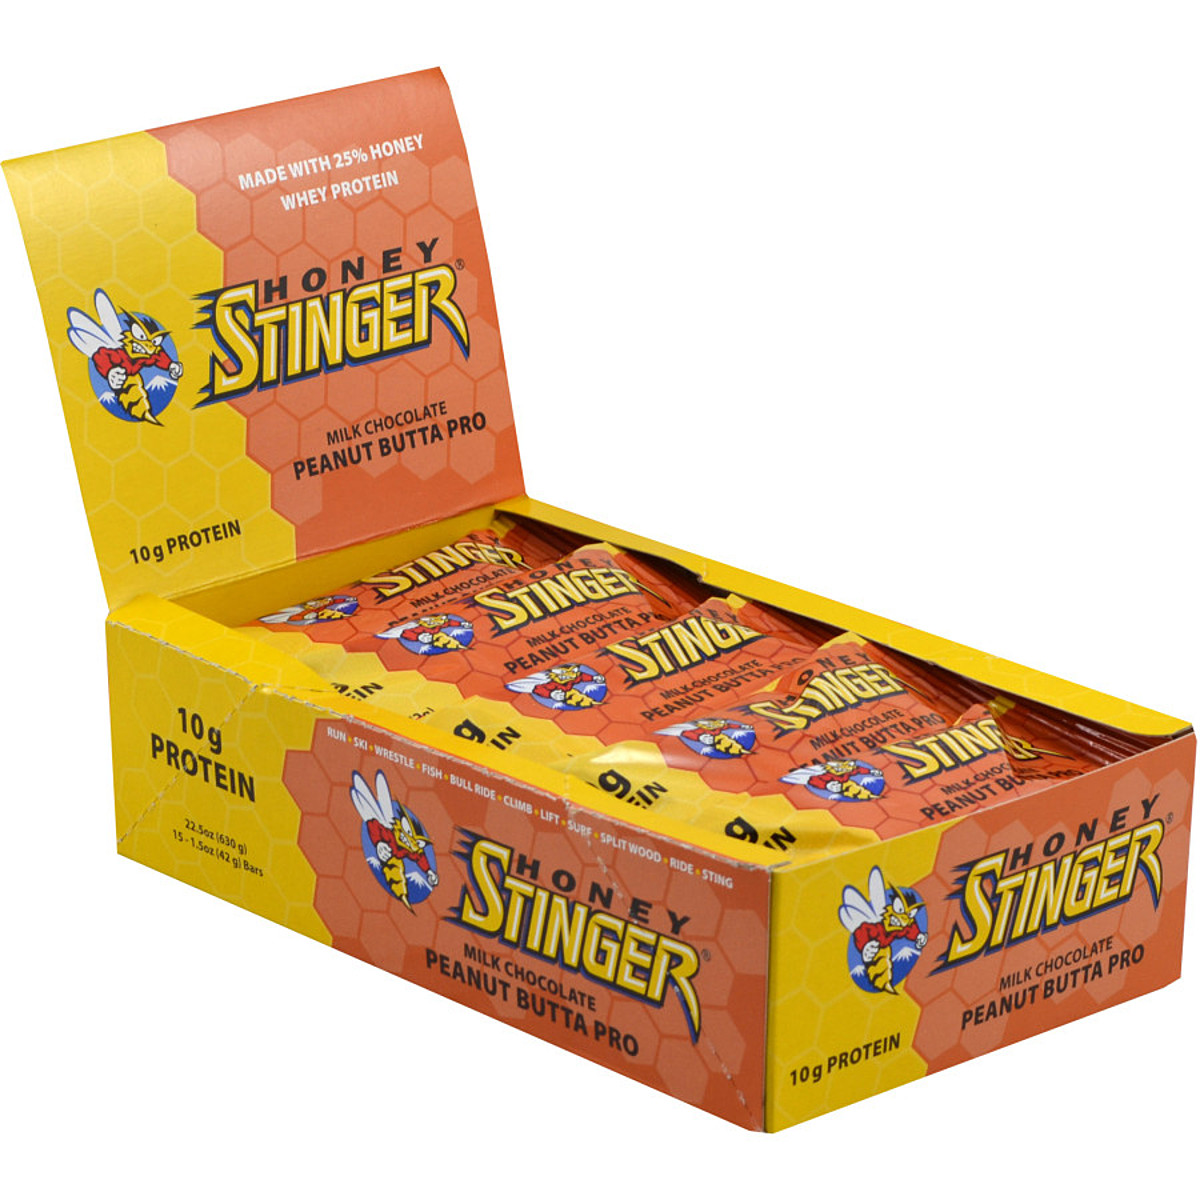 Honey Stinger Protein Bar